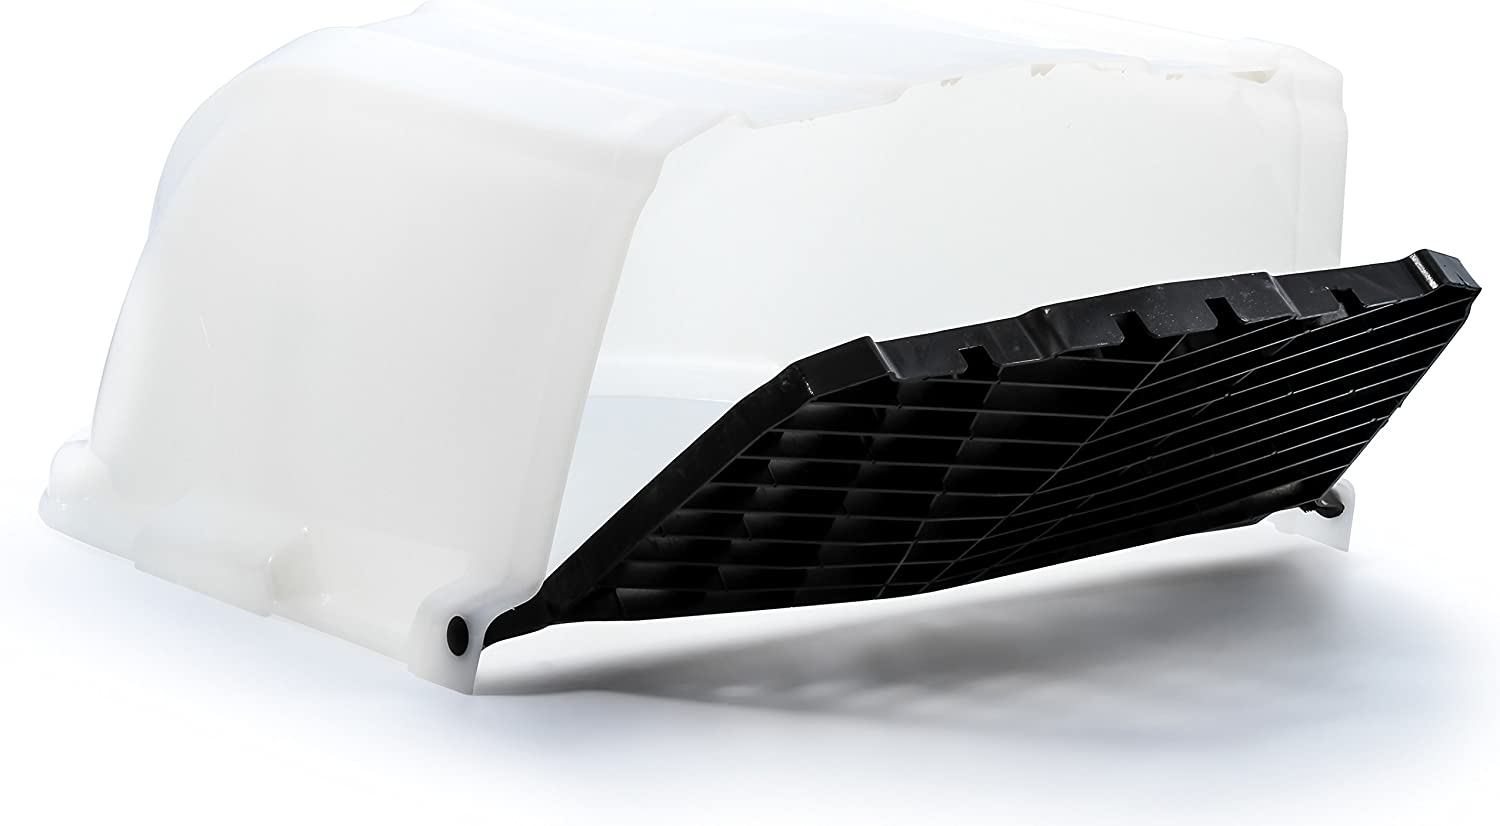 Camco XLT High Flow Roof Vent Cover, Opens for Easy Cleaning, Aerodynamic Design, Easily Mounts to RV with Included Hardware-White (40446)